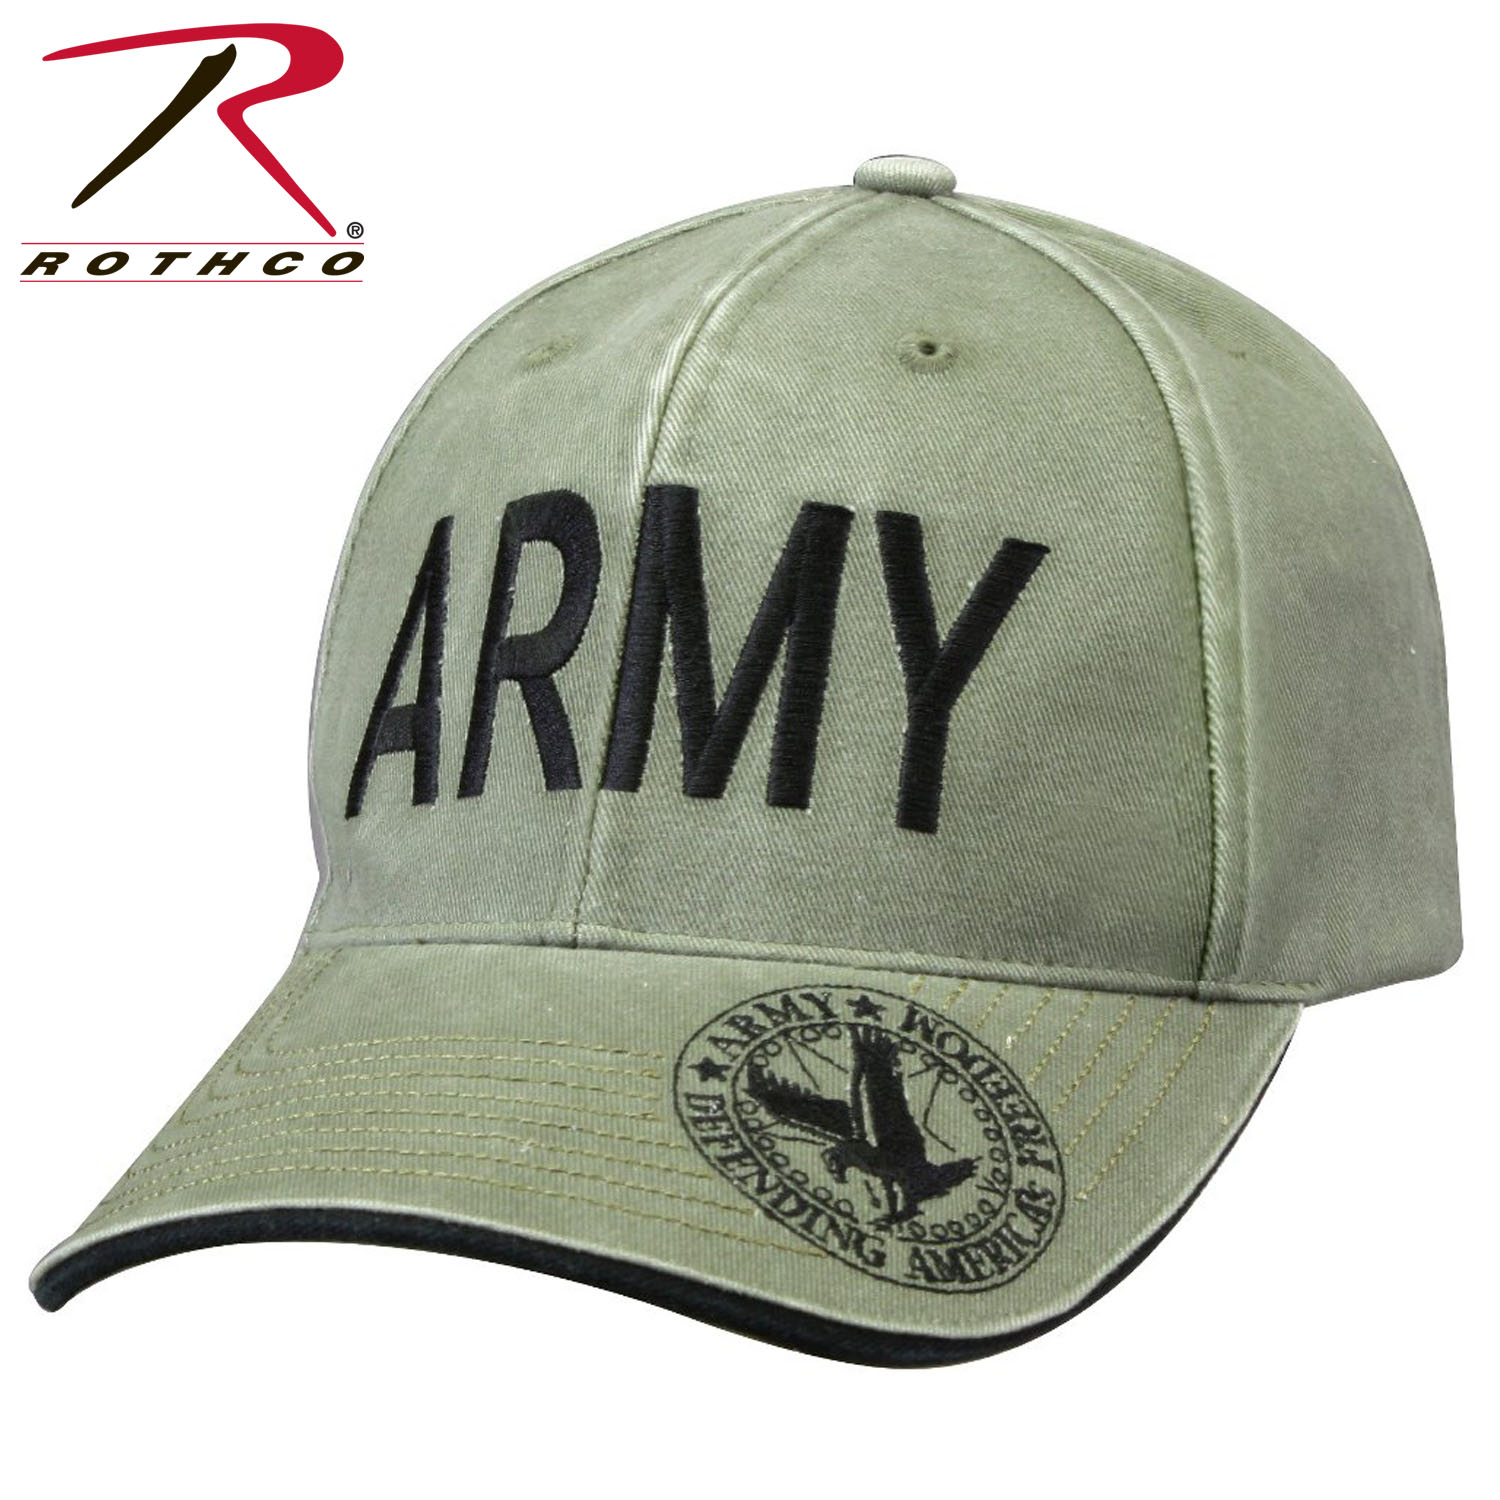 Rothco Vintage Deluxe Army Low Profile Insignia Cap 11cfc84c735d